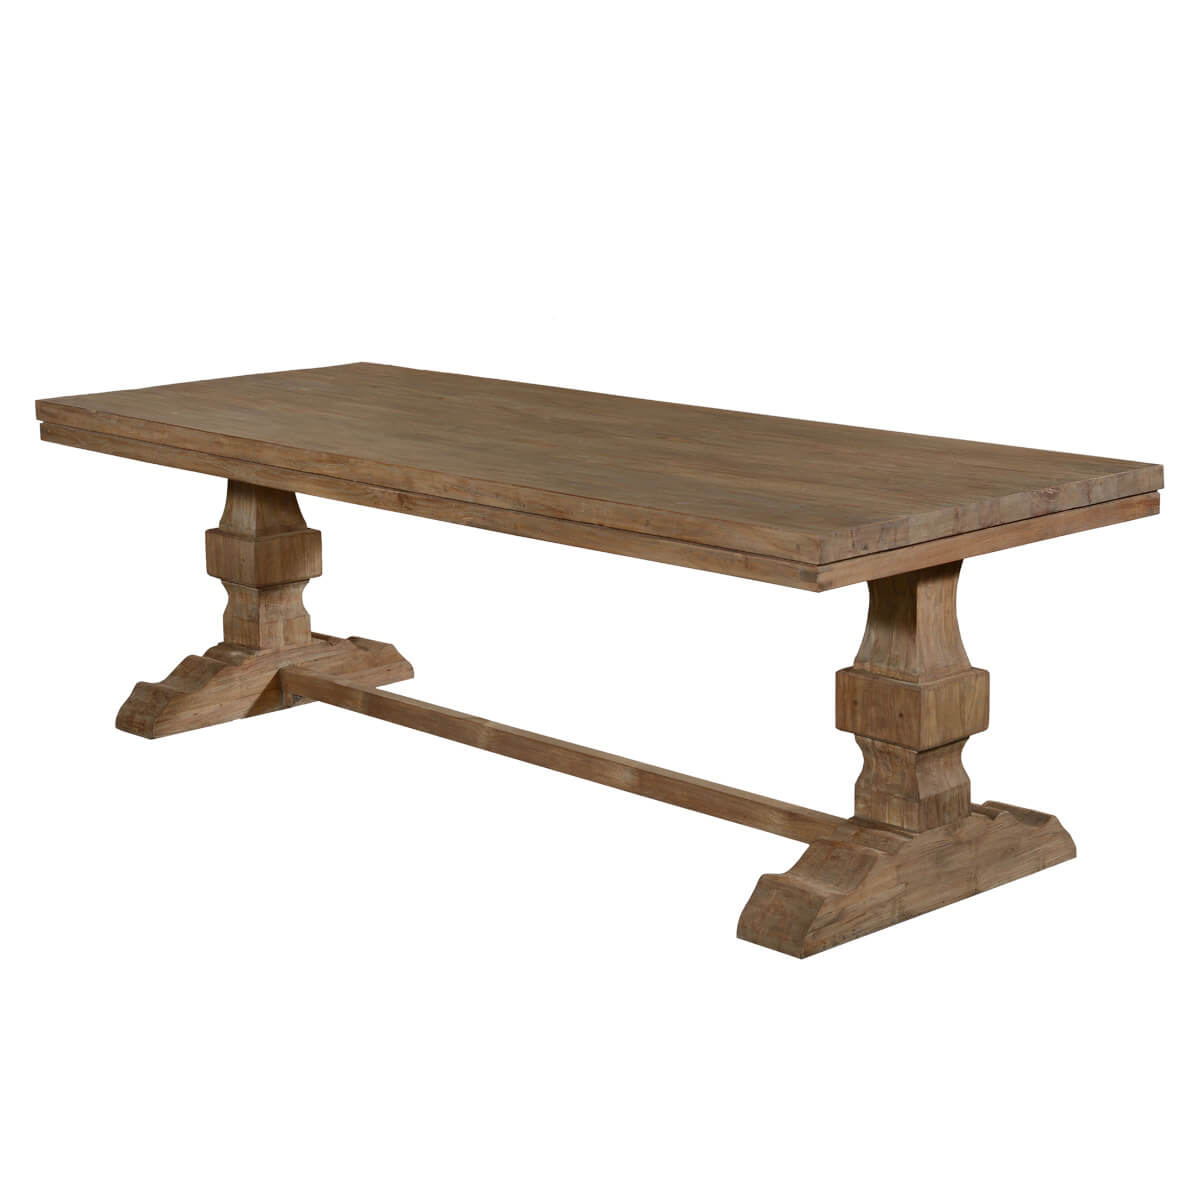 California casual rustic recycled teak trestle base dining for Rustic trestle dining table